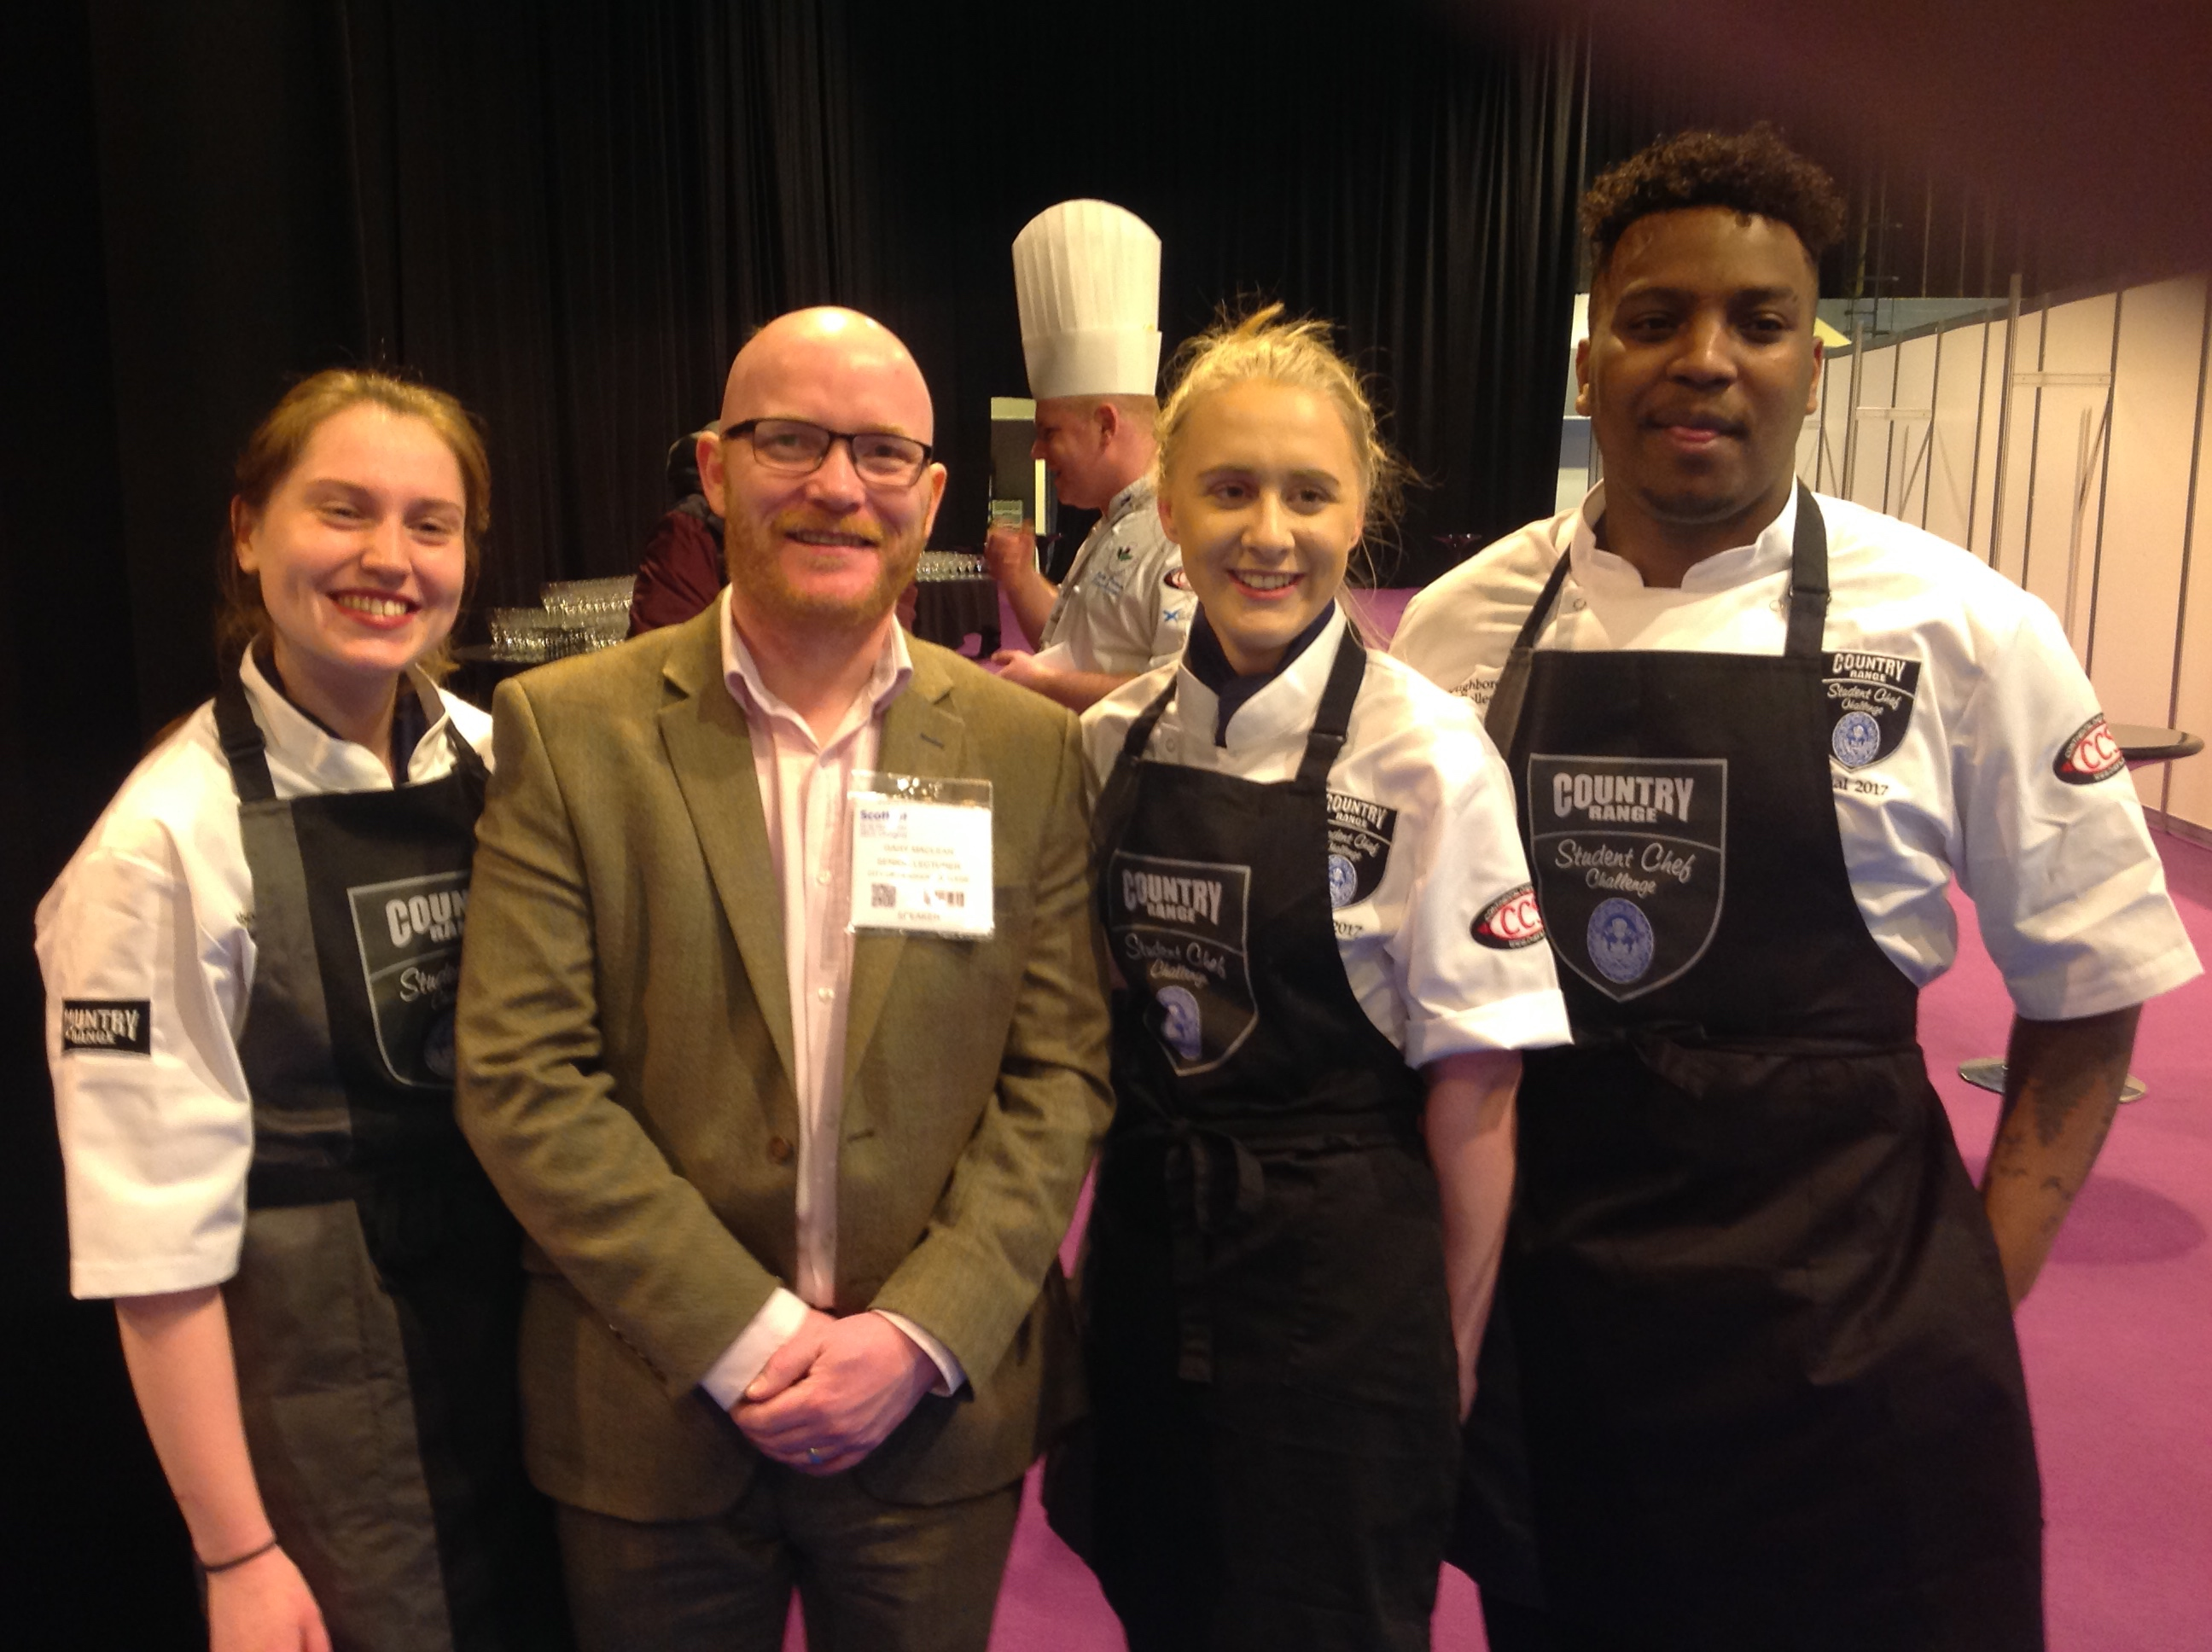 Loughborough College medal winners for second year in a row at prestigious national culinary competition